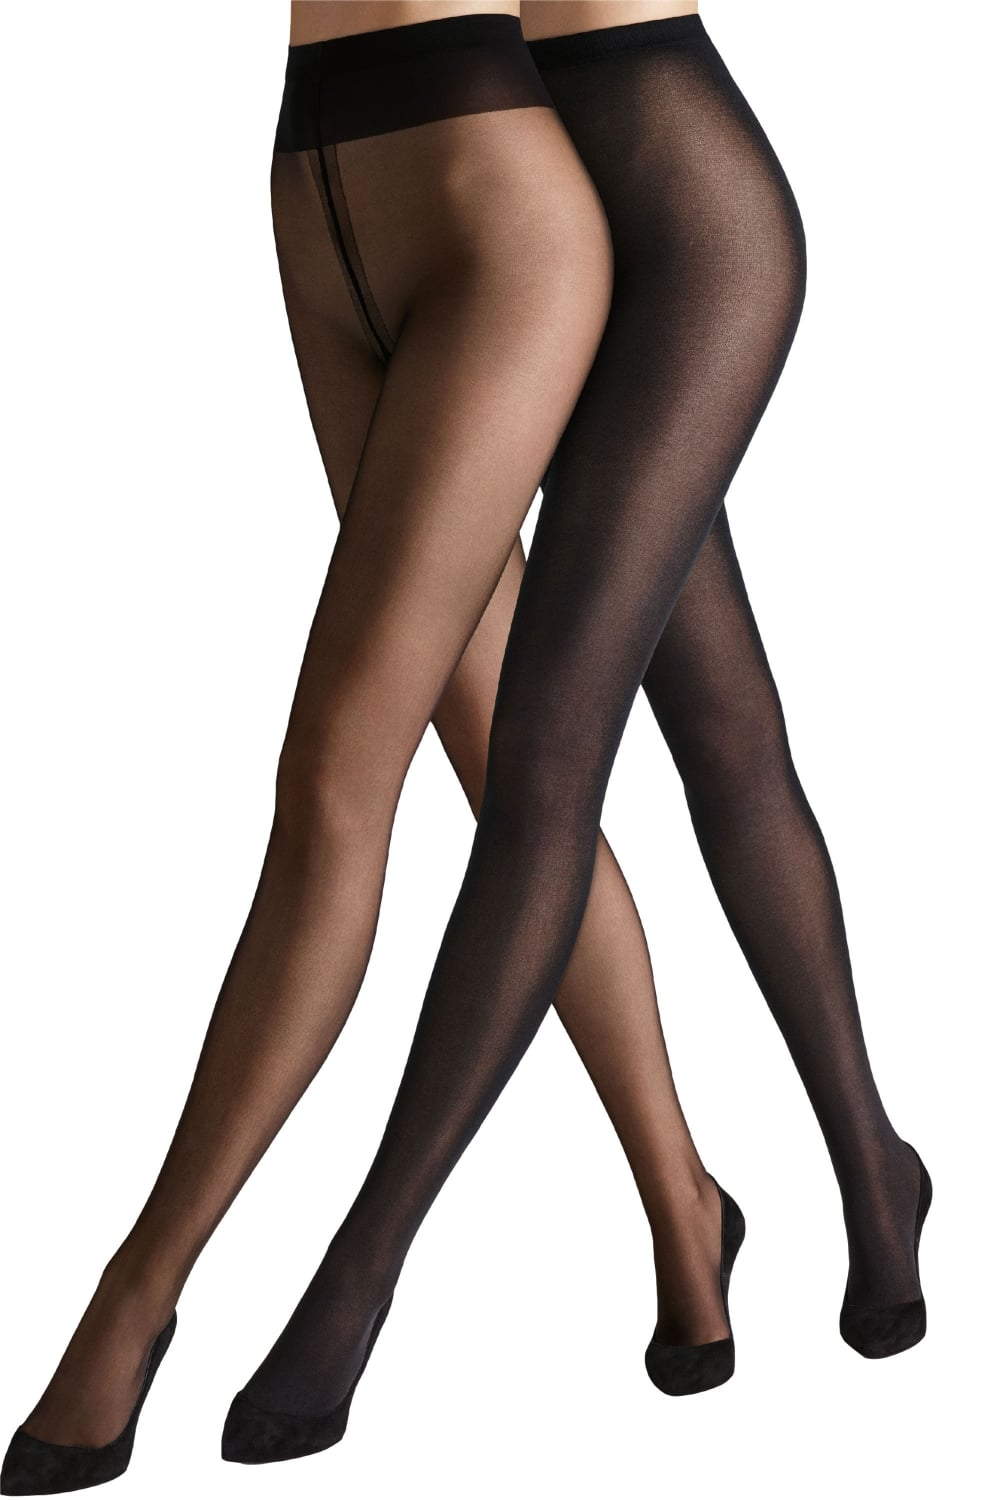 c9e6befebad Must Haves Duo Set - Individual 10 Tights And Velvet De Luxe 50 Tights